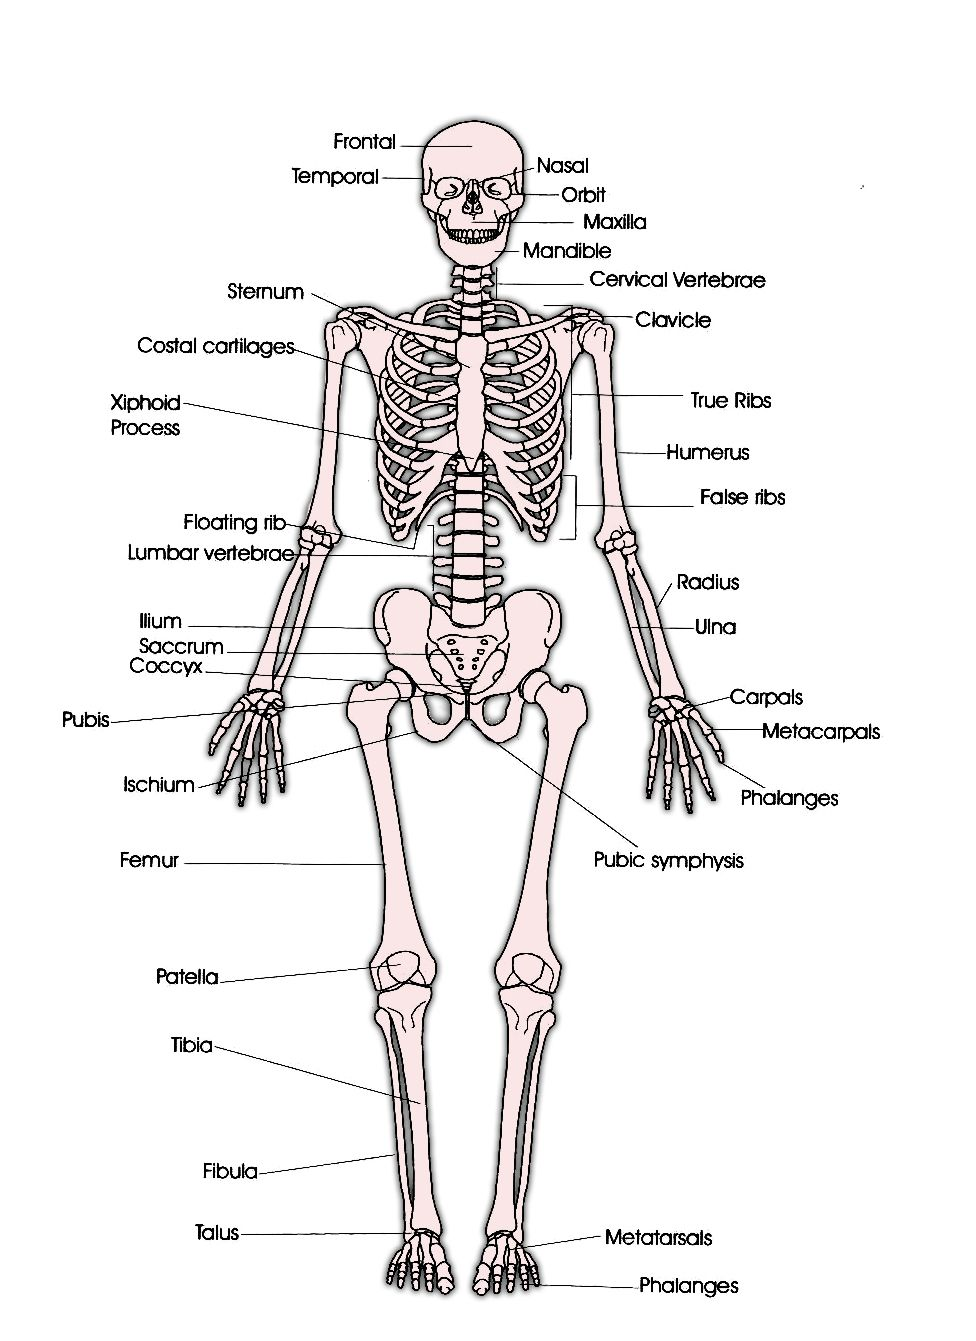 Skeletal System Labeled Diagrams Human Skeleton The Skeletal